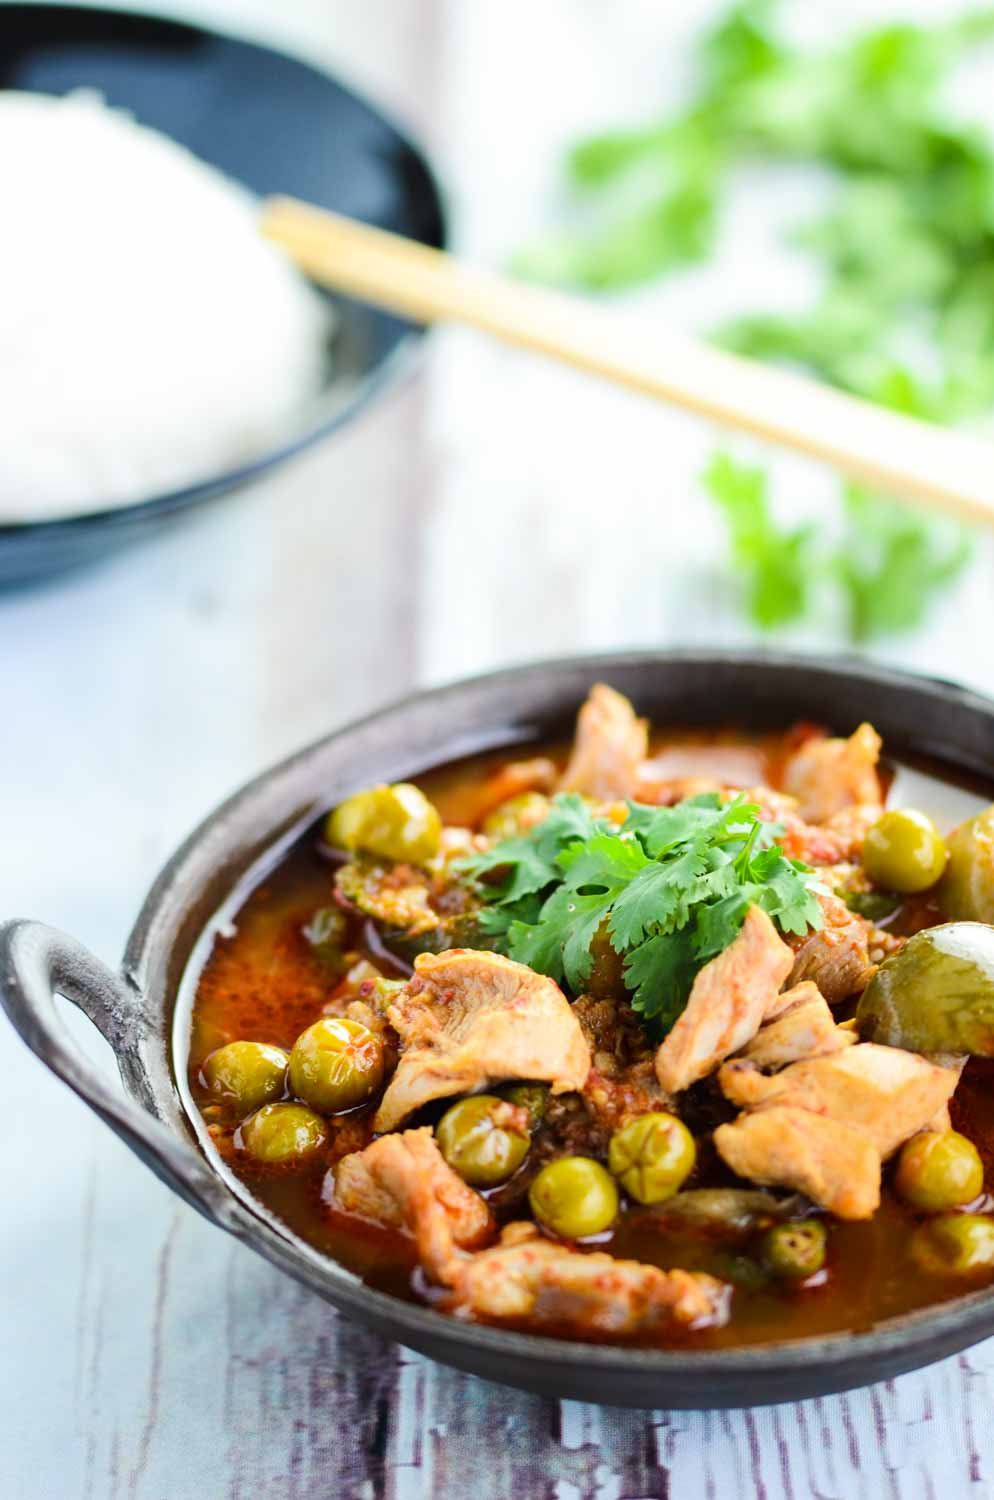 Another popular Thai Curry, Jungle Curry that is a healthier curry ...